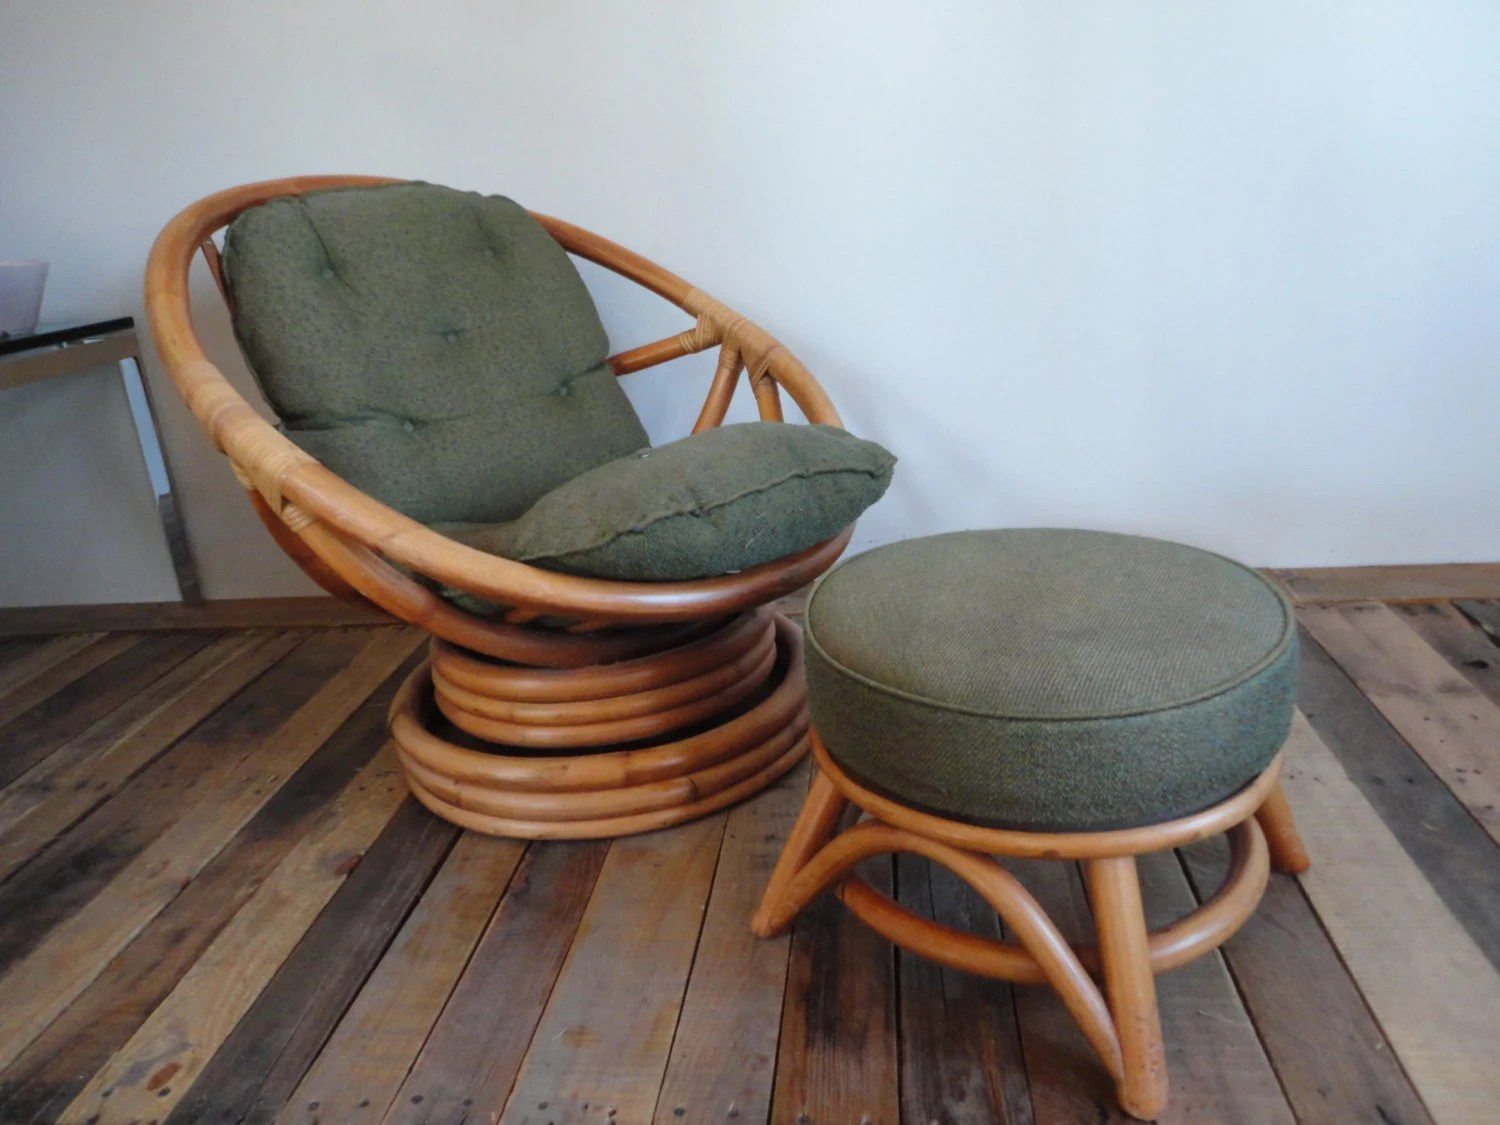 hanging chair trolley kitchen cushions low rider swivel rattan with ottoman vintage 60s 70s mid